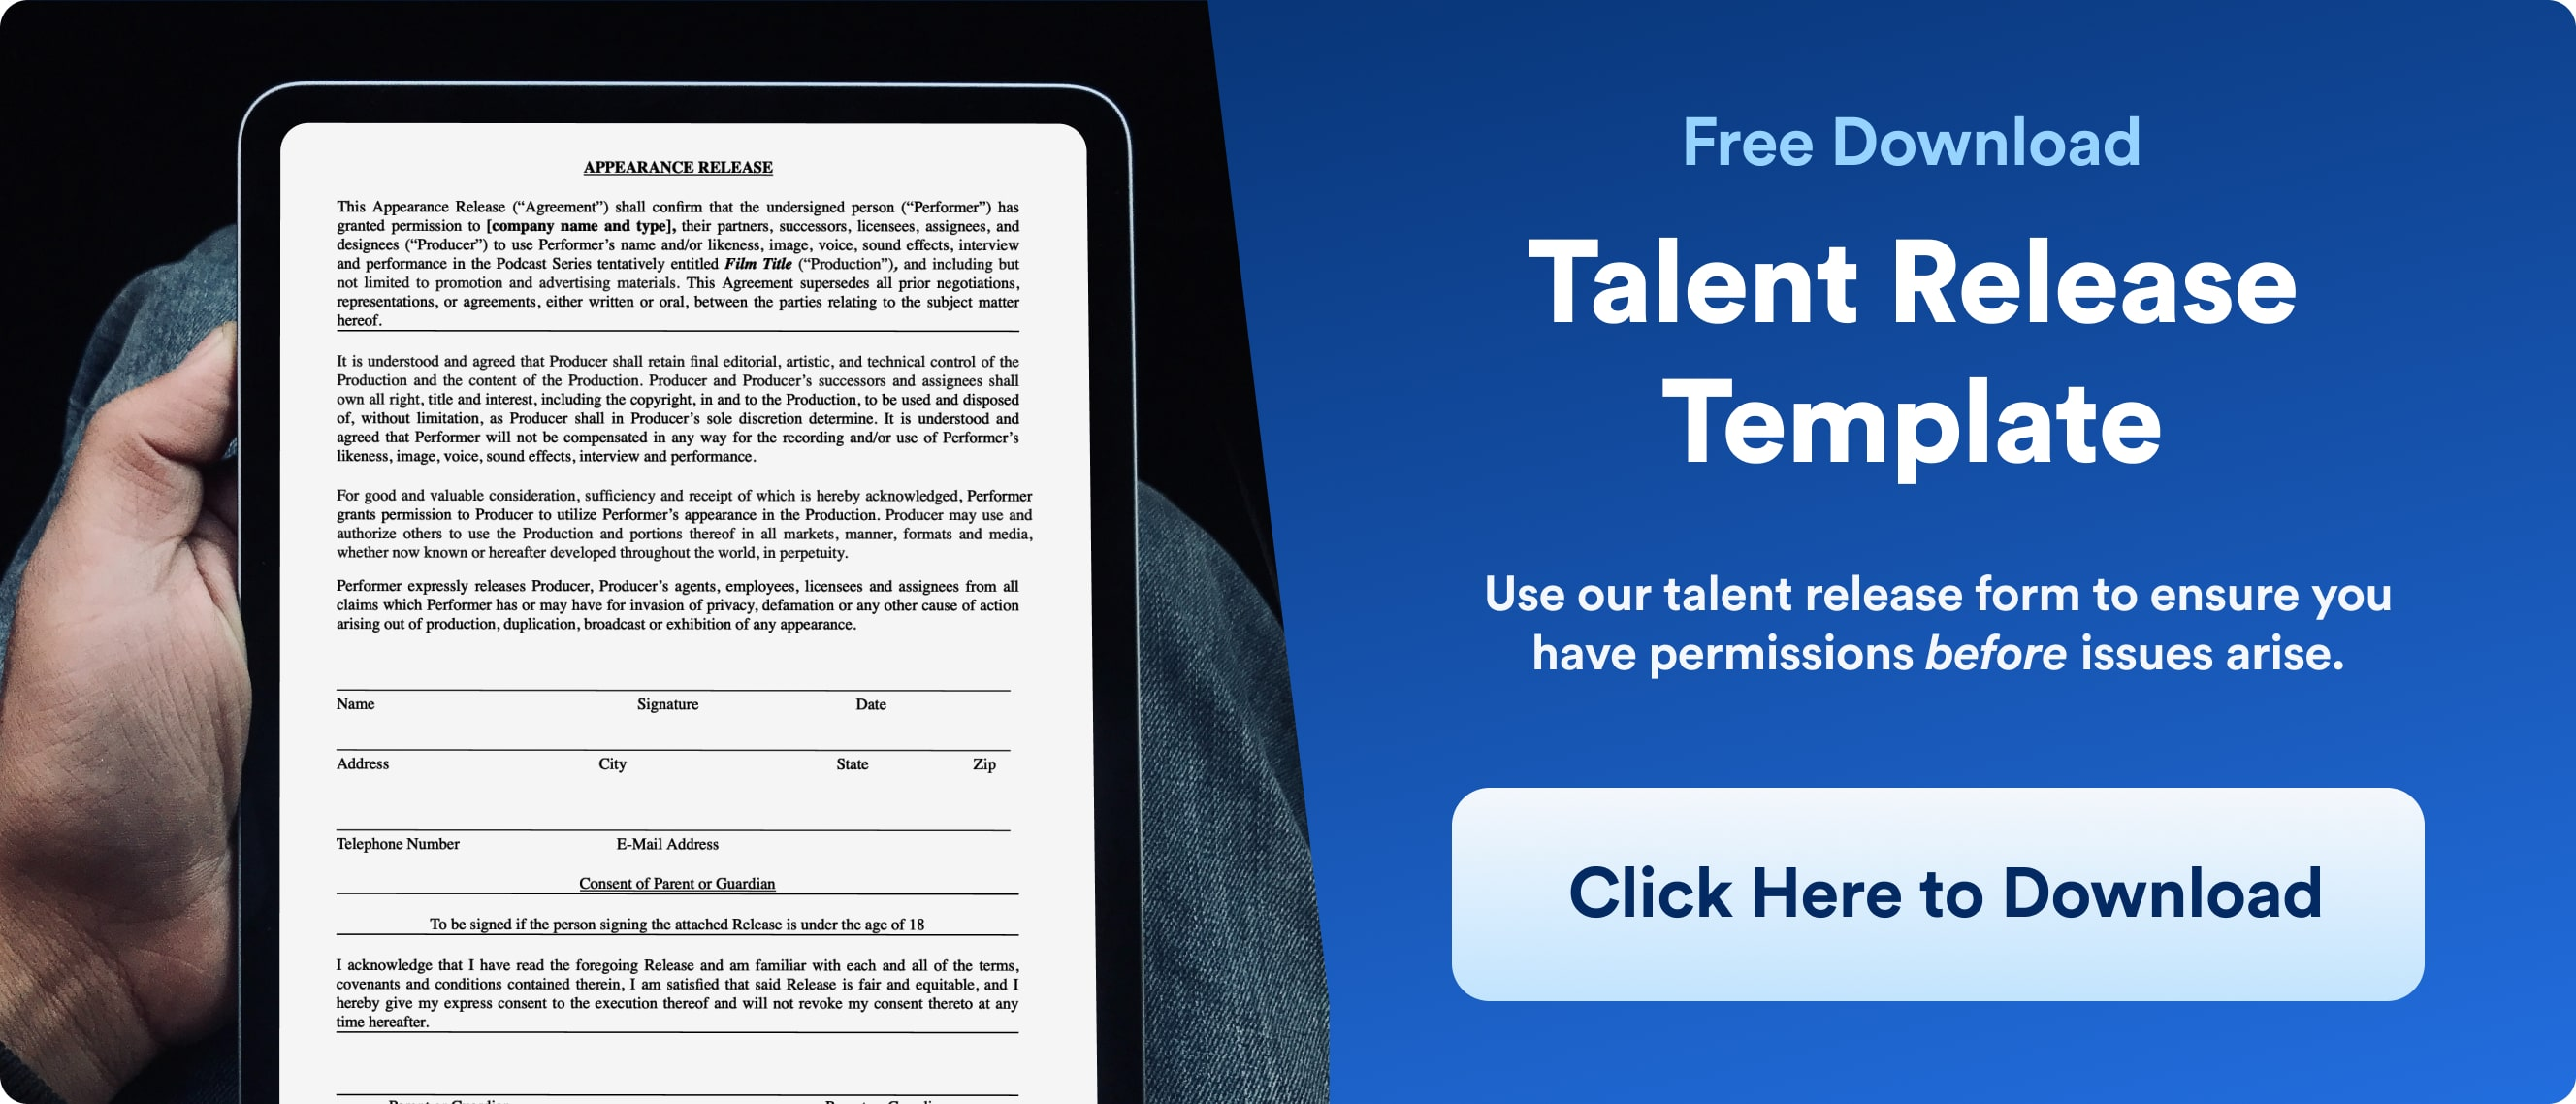 Model Release Forms - Talent Release Download - Wrapbook